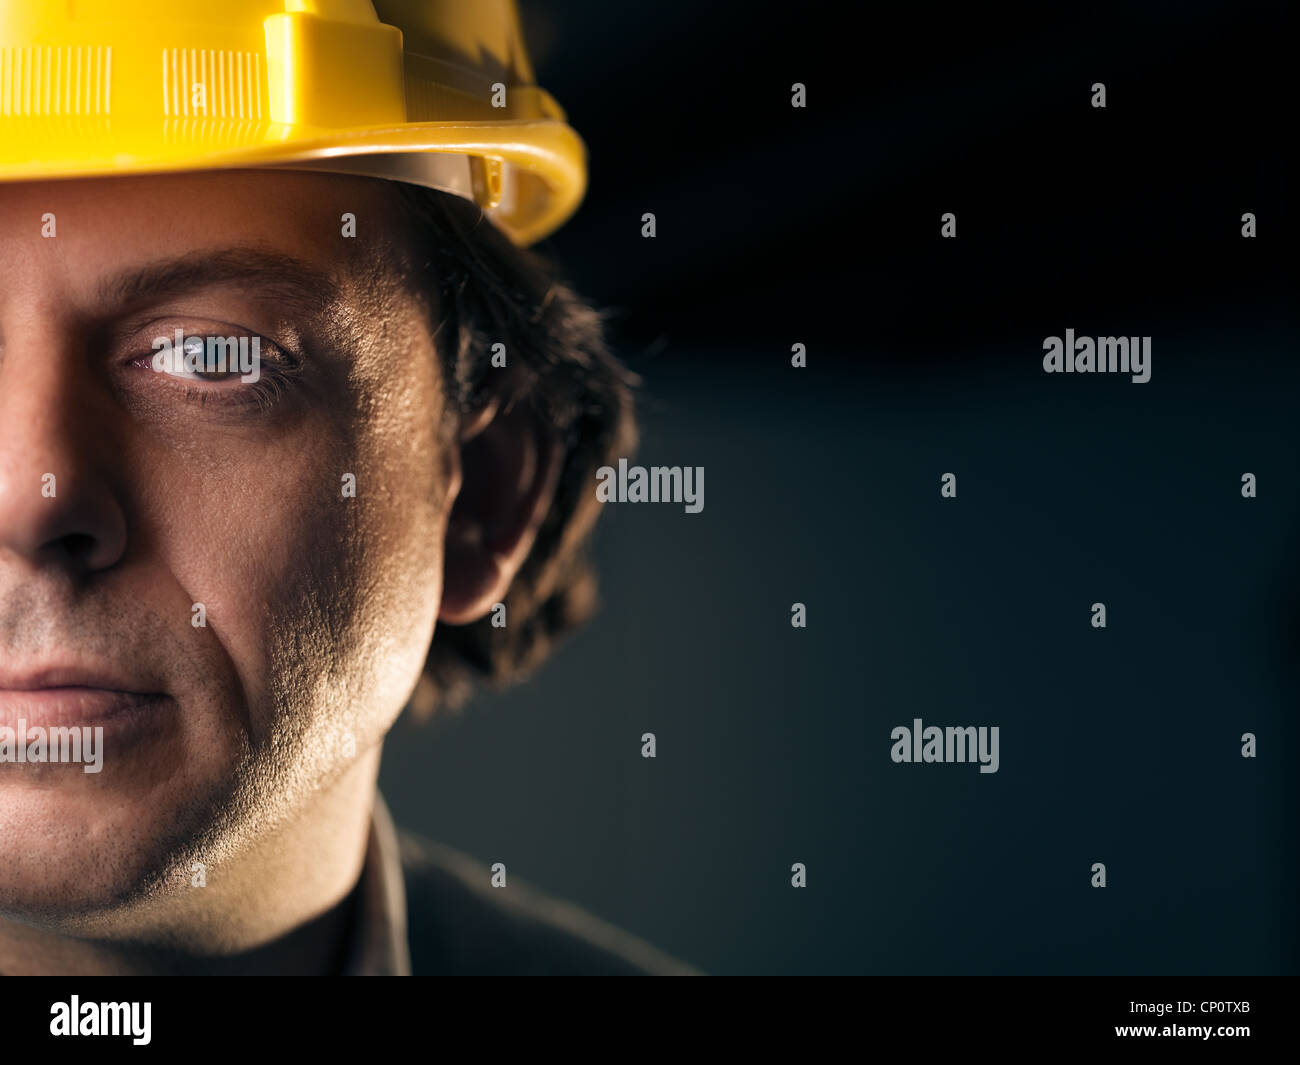 Portrait of serious middle aged man working as construction worker with hardhat. Copy space - Stock Image